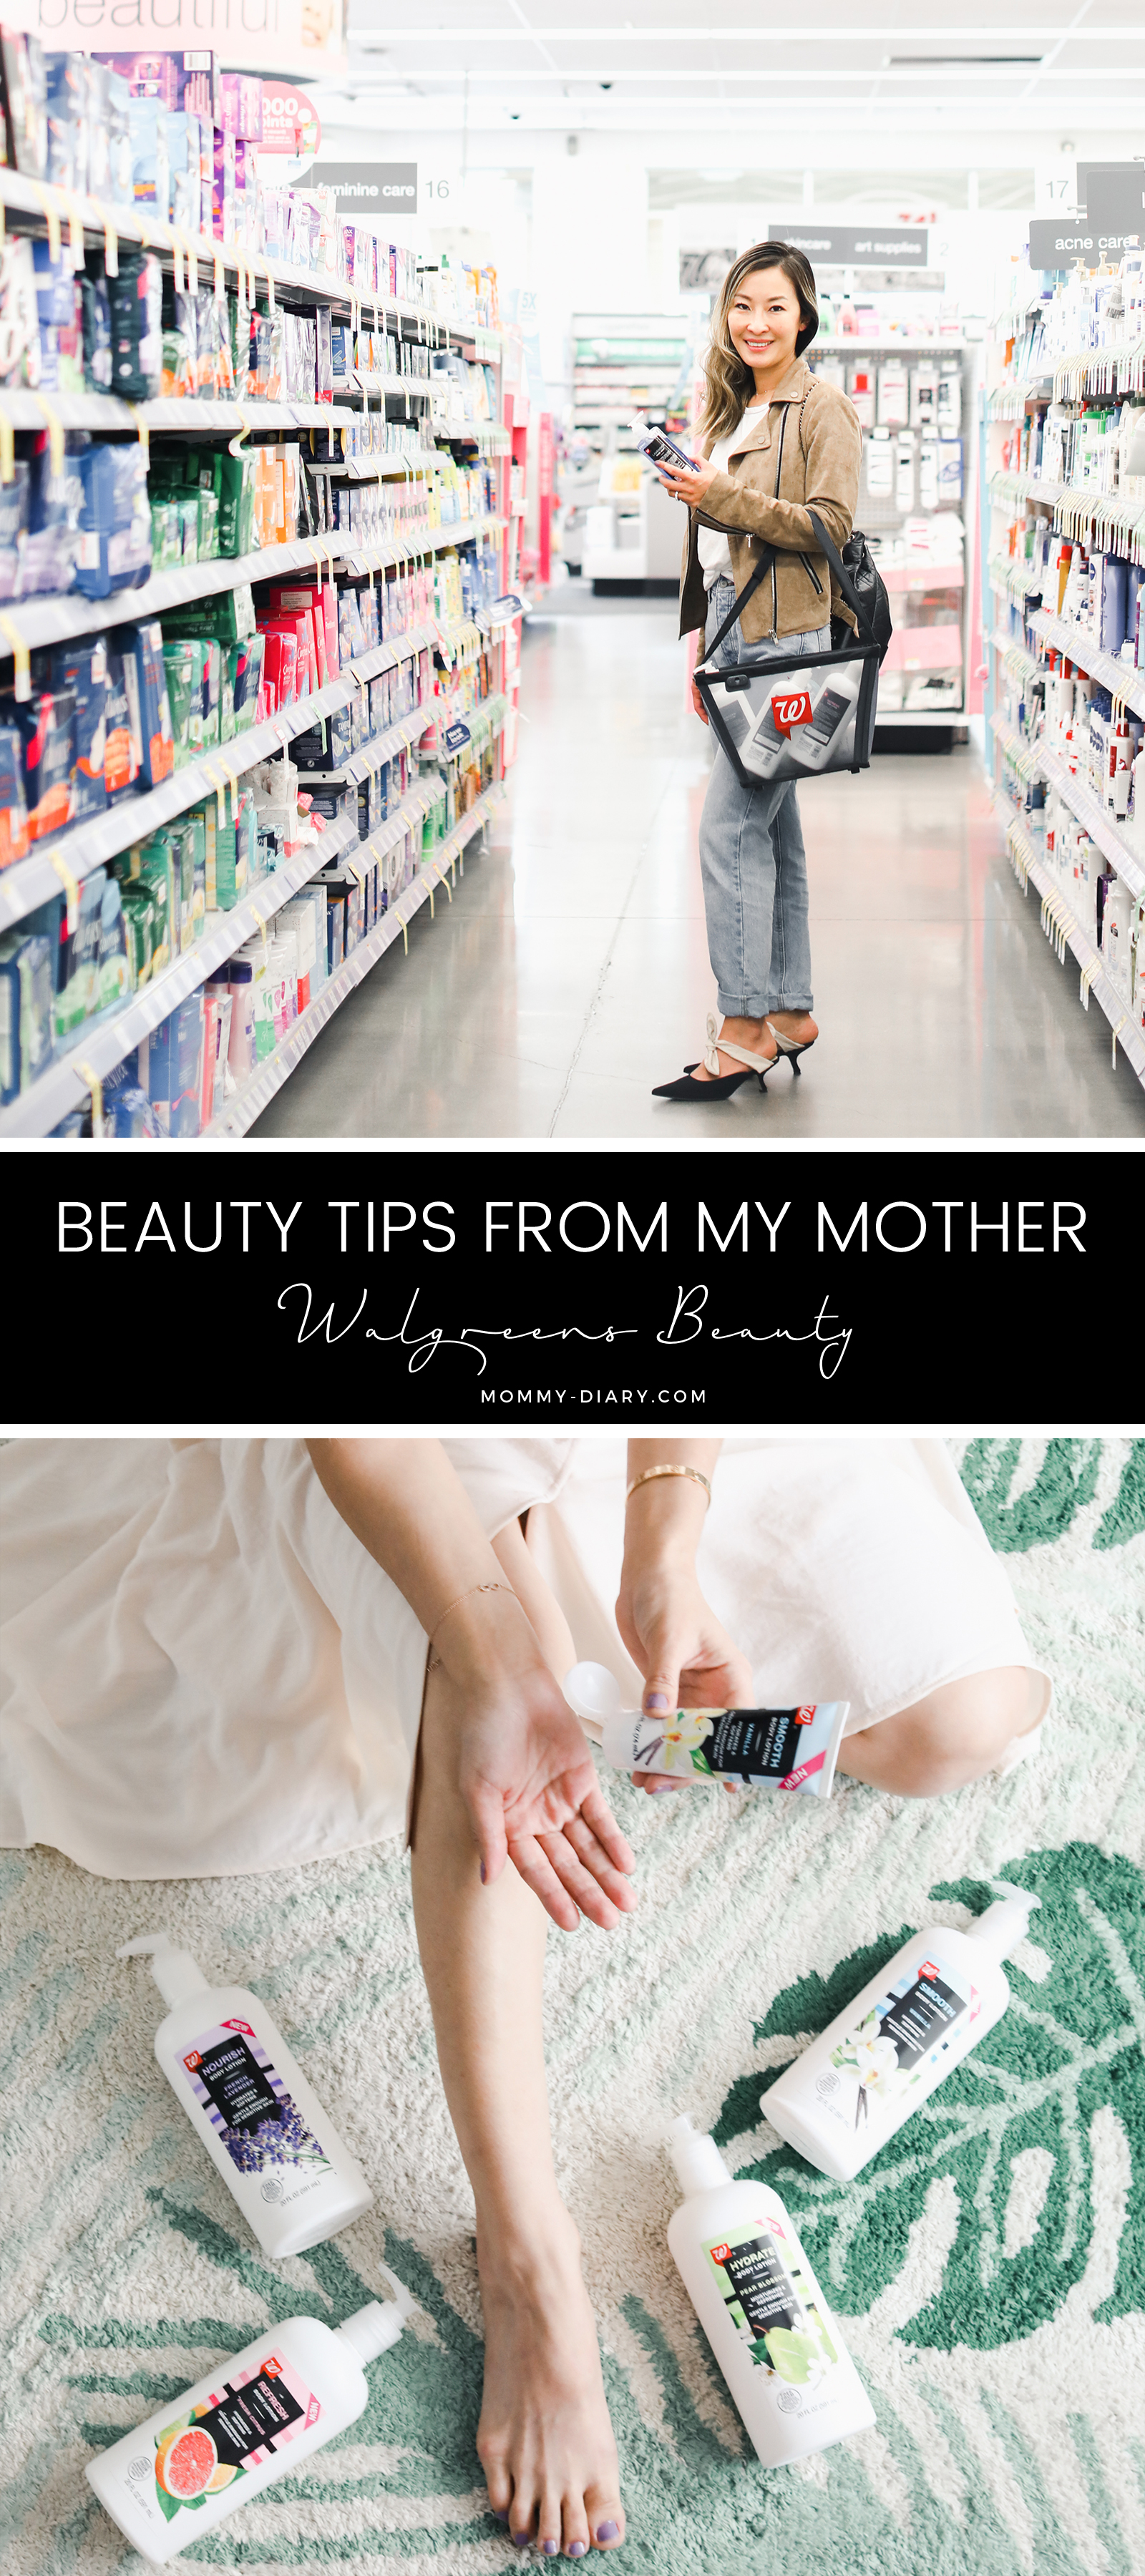 walgreens-beauty-pinterest